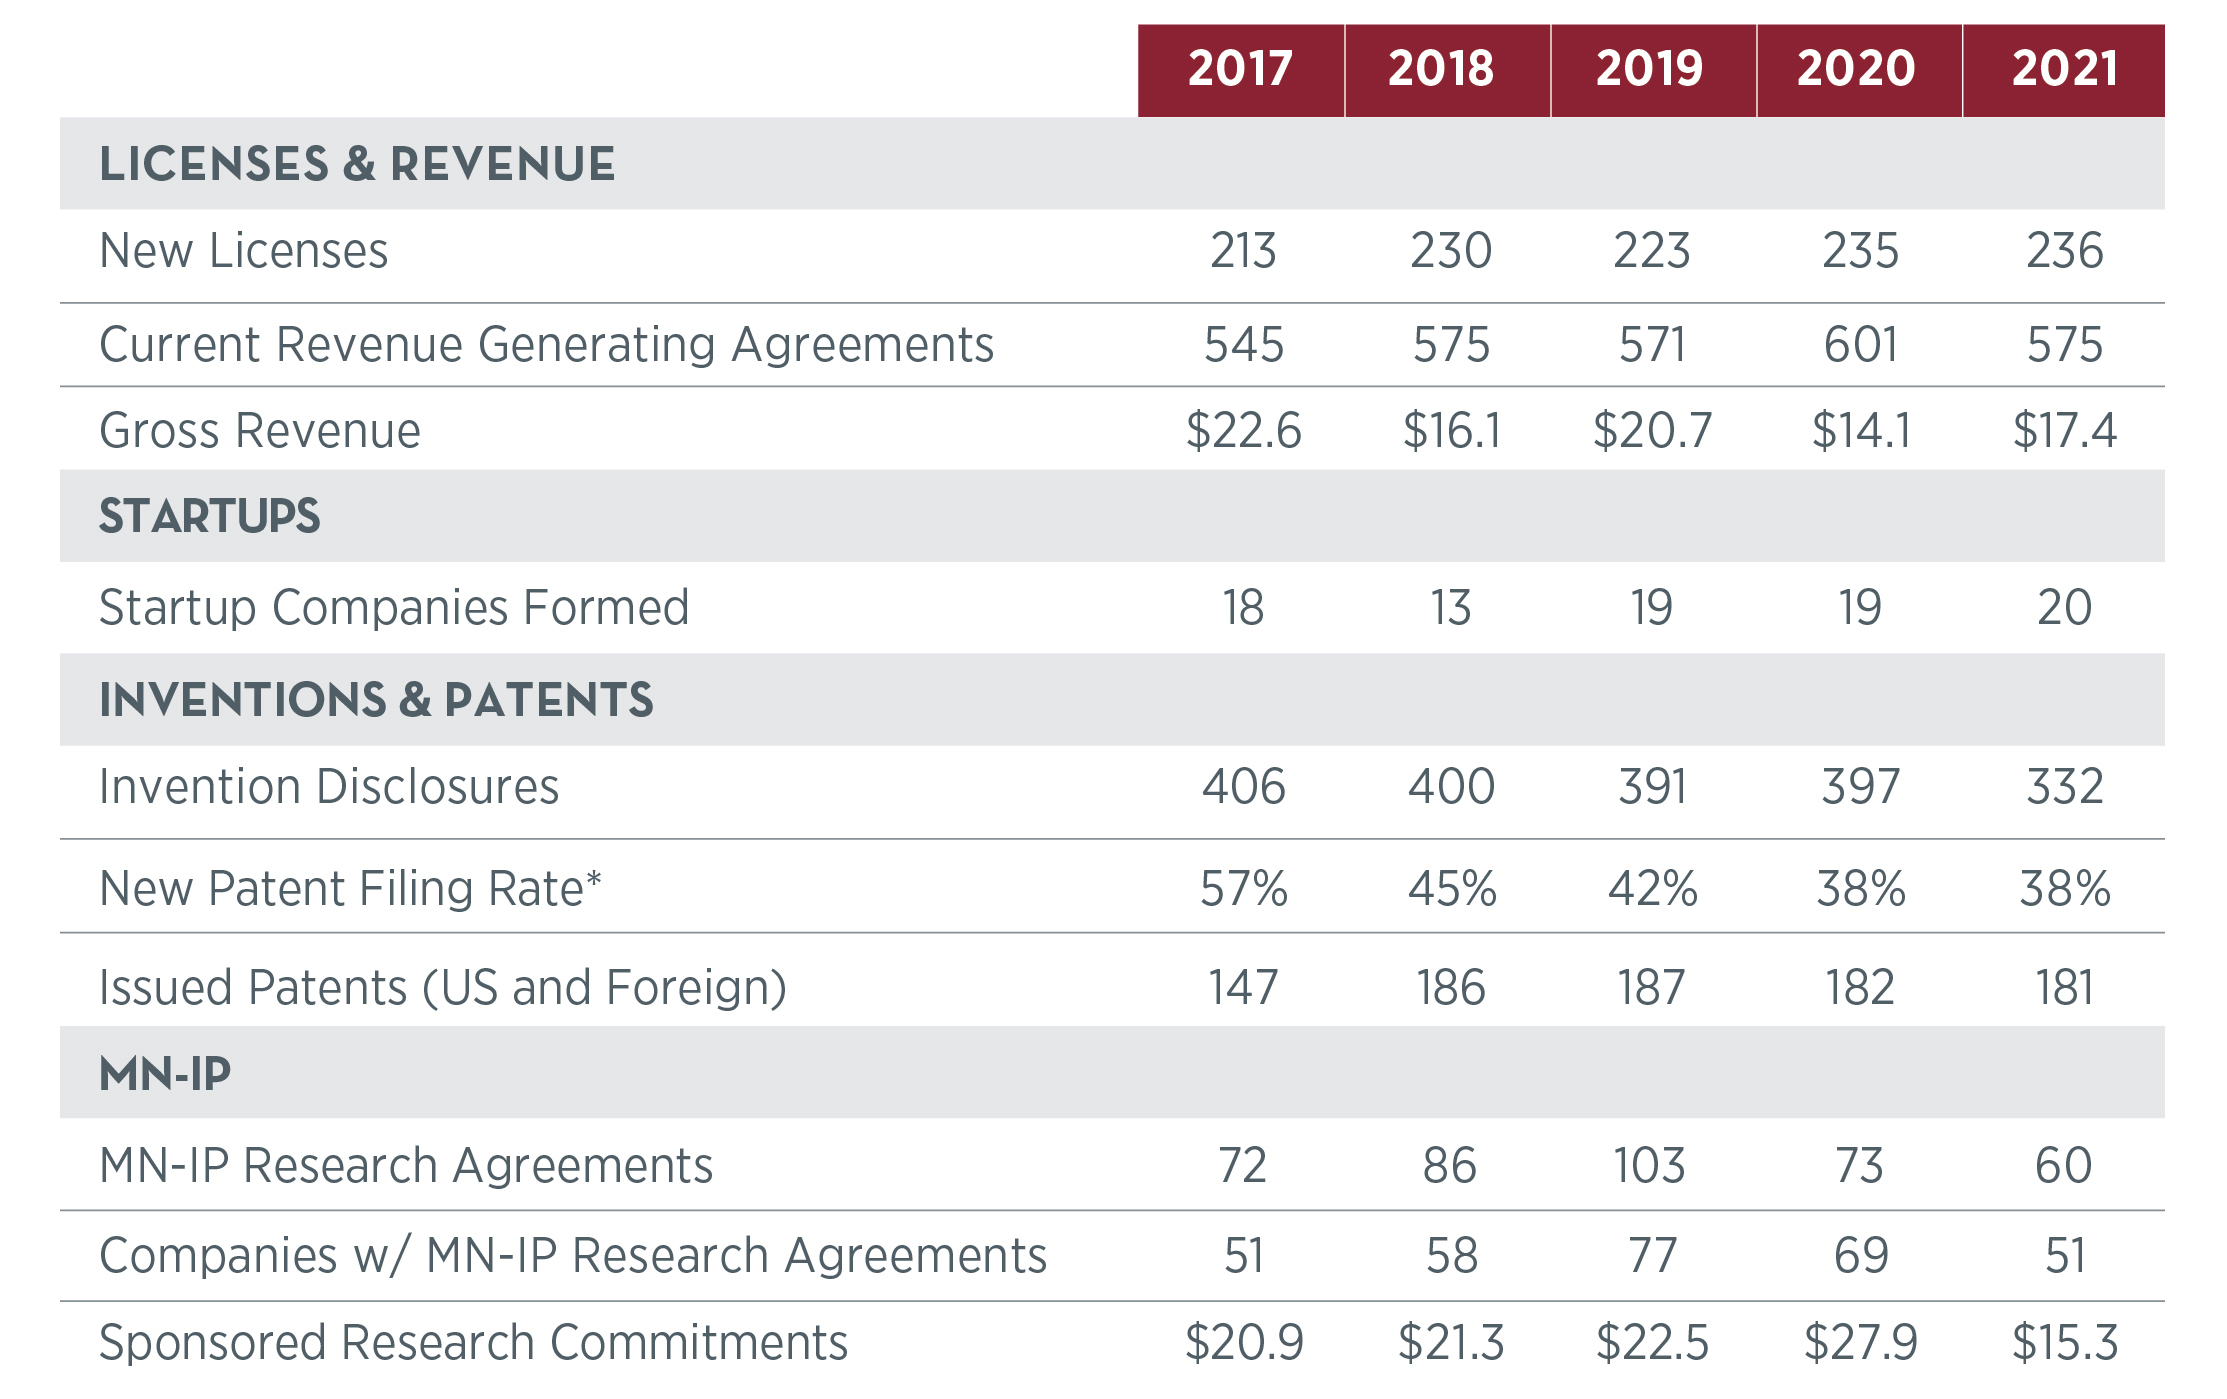 Graph depicting a five year trend of growth in funding, depicting the breakdown of funding sources. Alternative formats available by contacting ovprcomm@umn.edu.